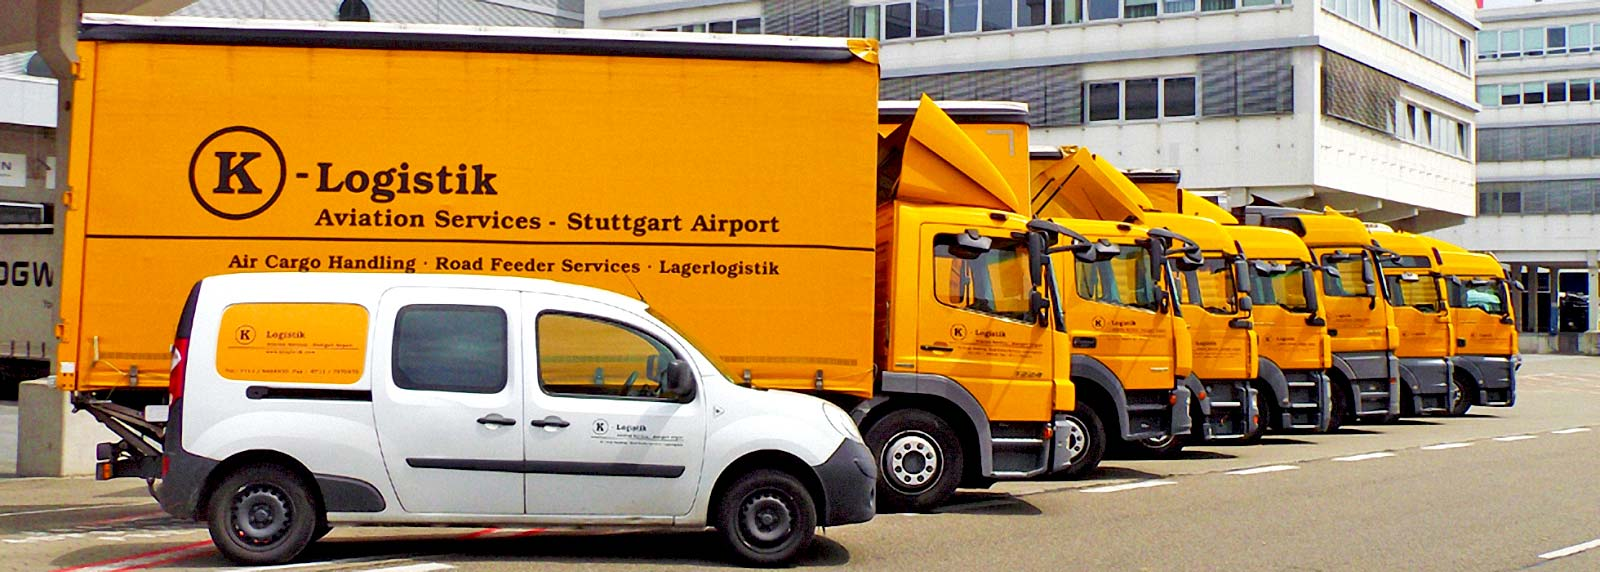 K-Logistik - Trucking und Road Feeder Service